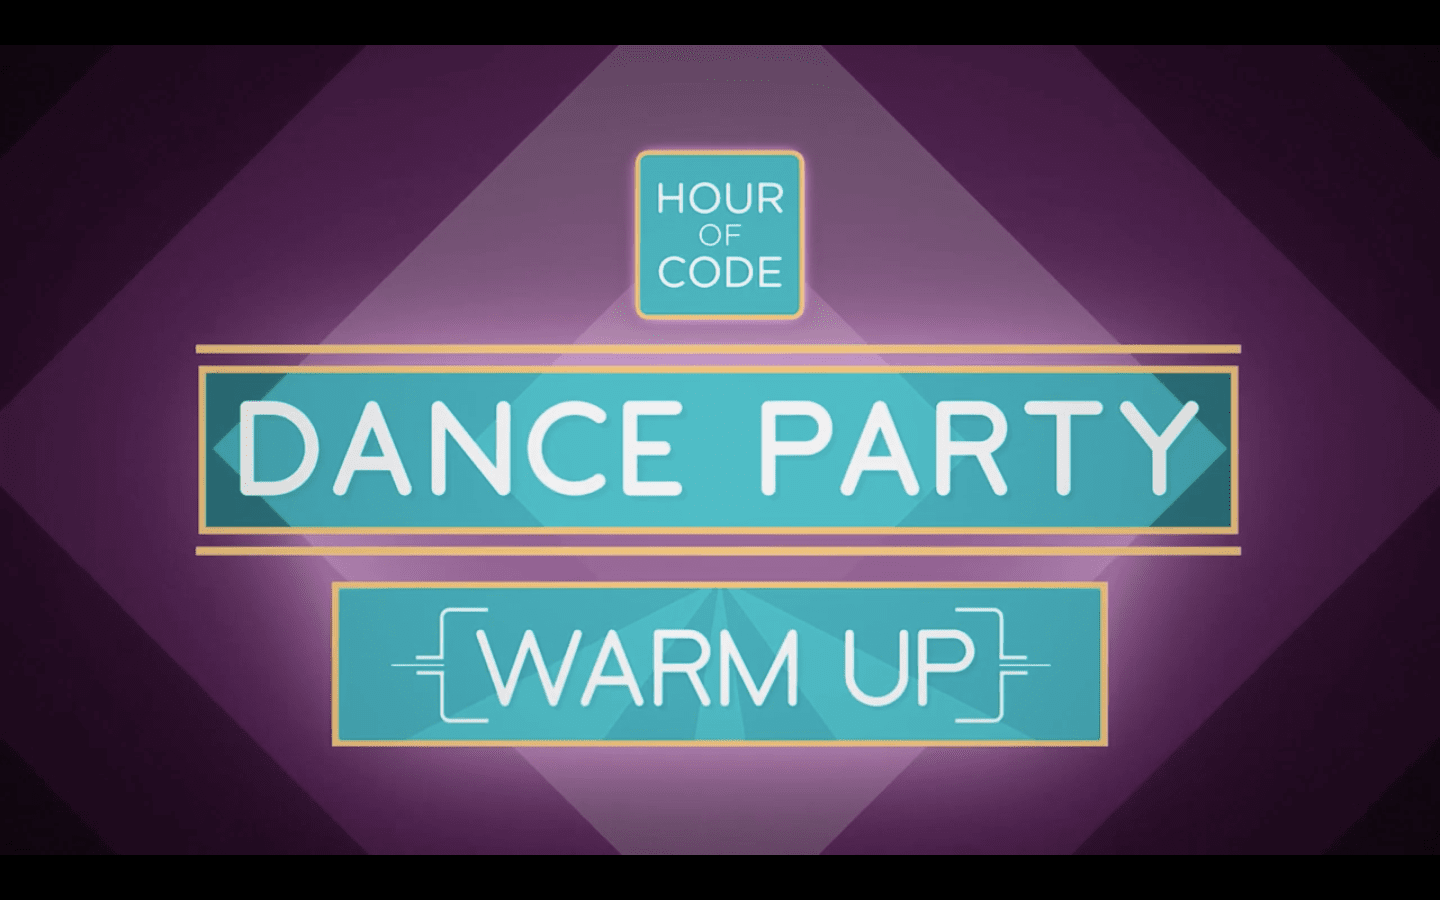 Code org - Dance Party